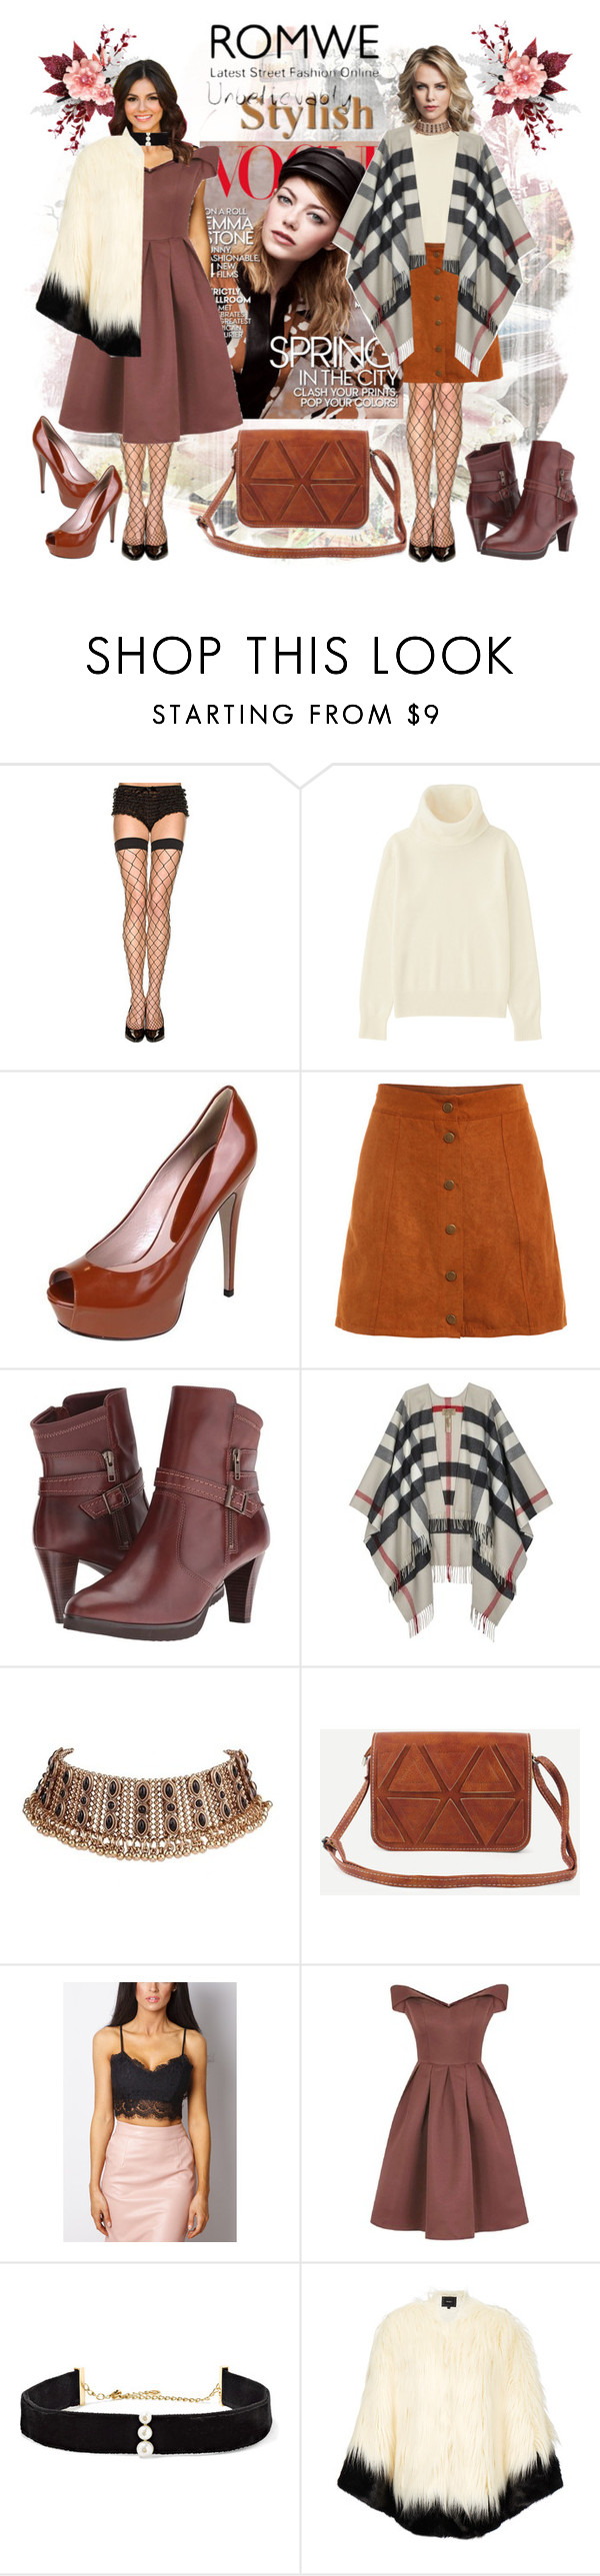 """""""Romwe Camel Bag!"""" by bevmardesigns ❤ liked on Polyvore featuring Uniqlo, Gucci, Walking Cradles, Burberry, Chi Chi, Anissa Kermiche and Unreal Fur"""